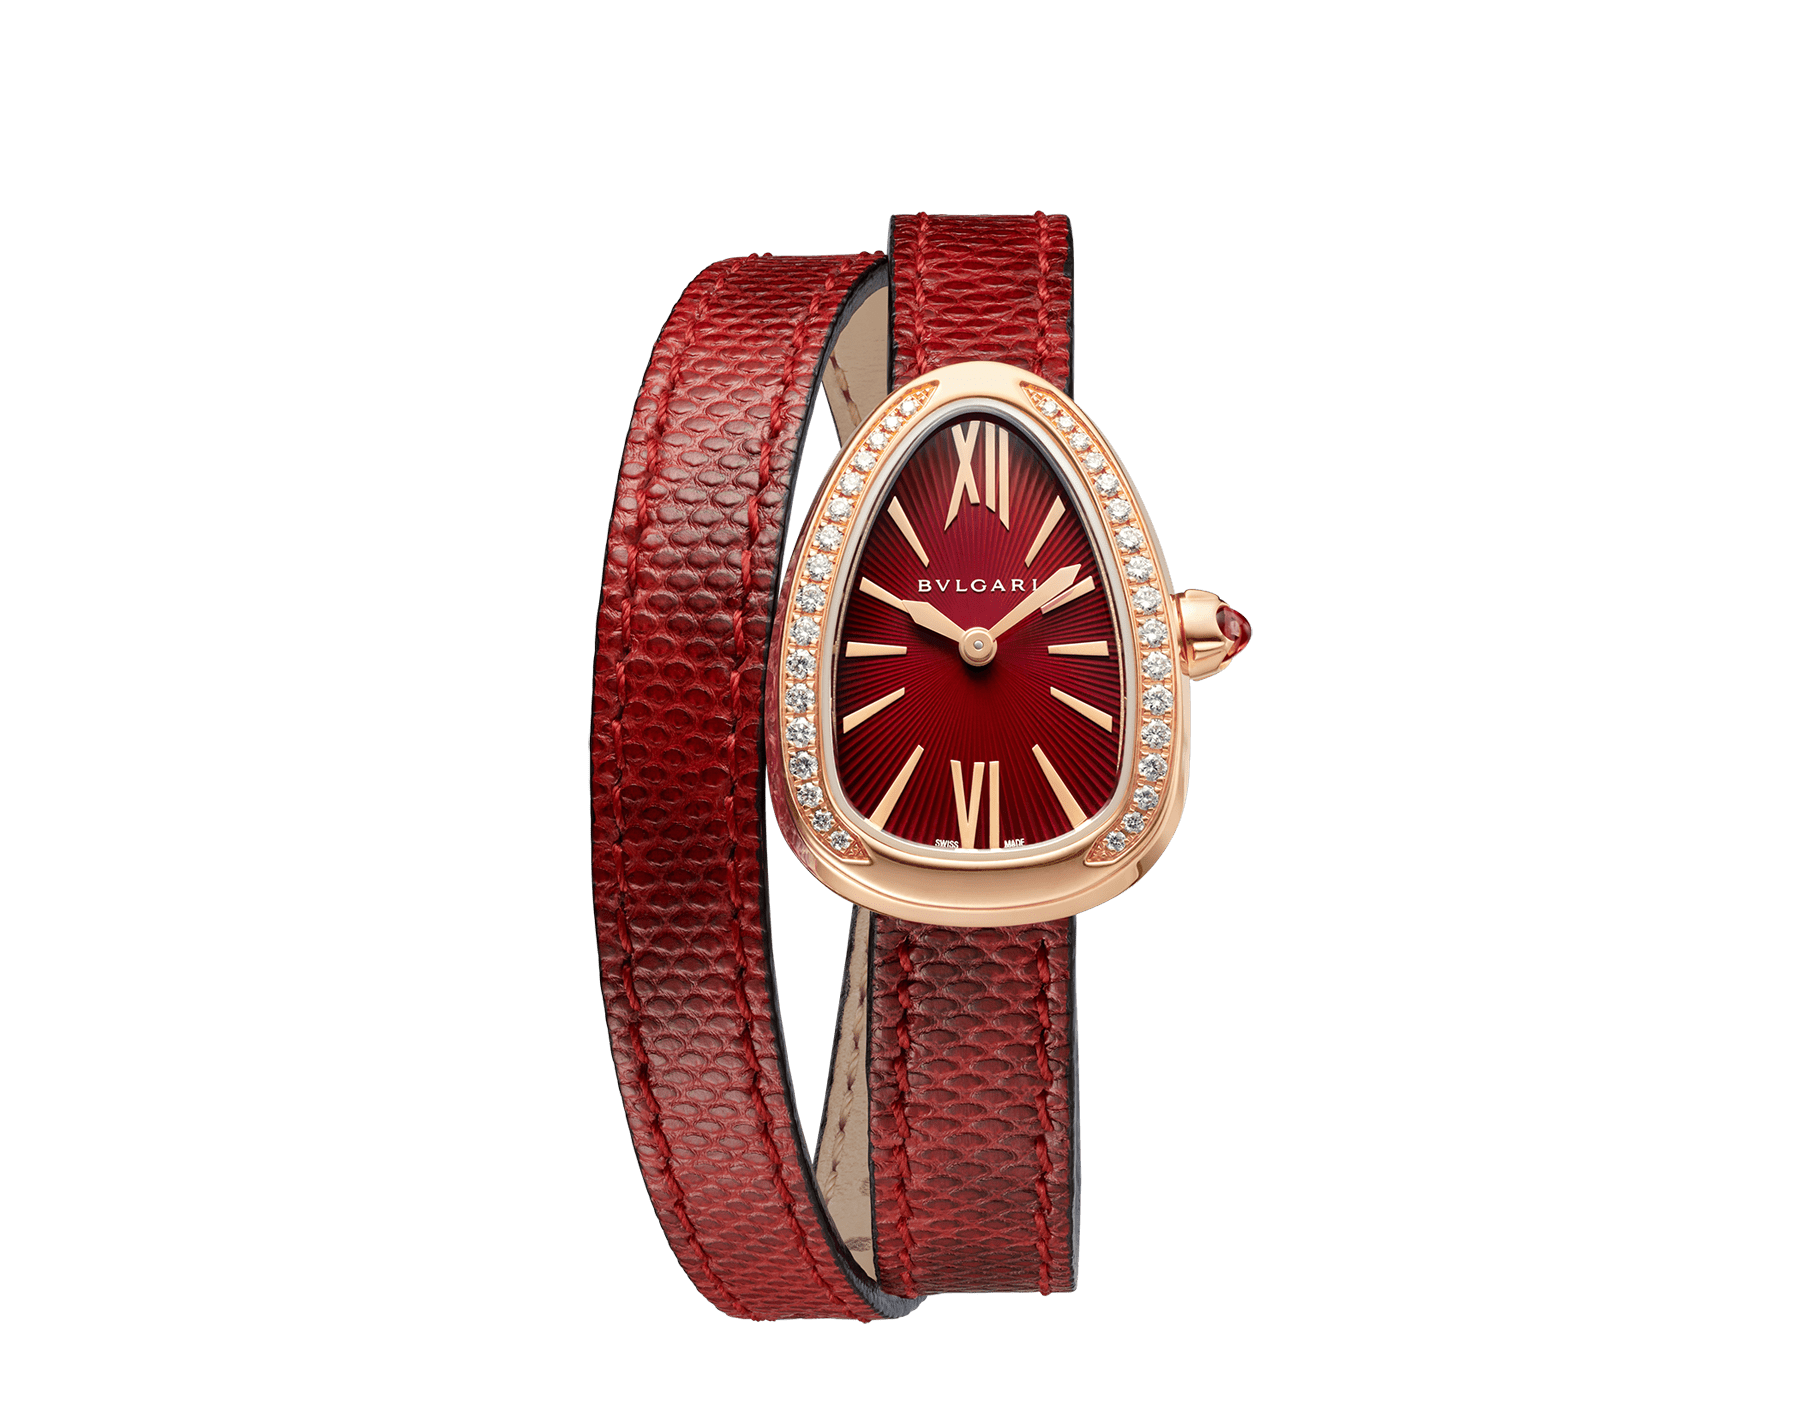 Serpenti watch with 18 kt rose gold case set with brilliant cut diamonds, red lacquered dial and interchangeable double spiral bracelet in red karung leather. 102730 image 1